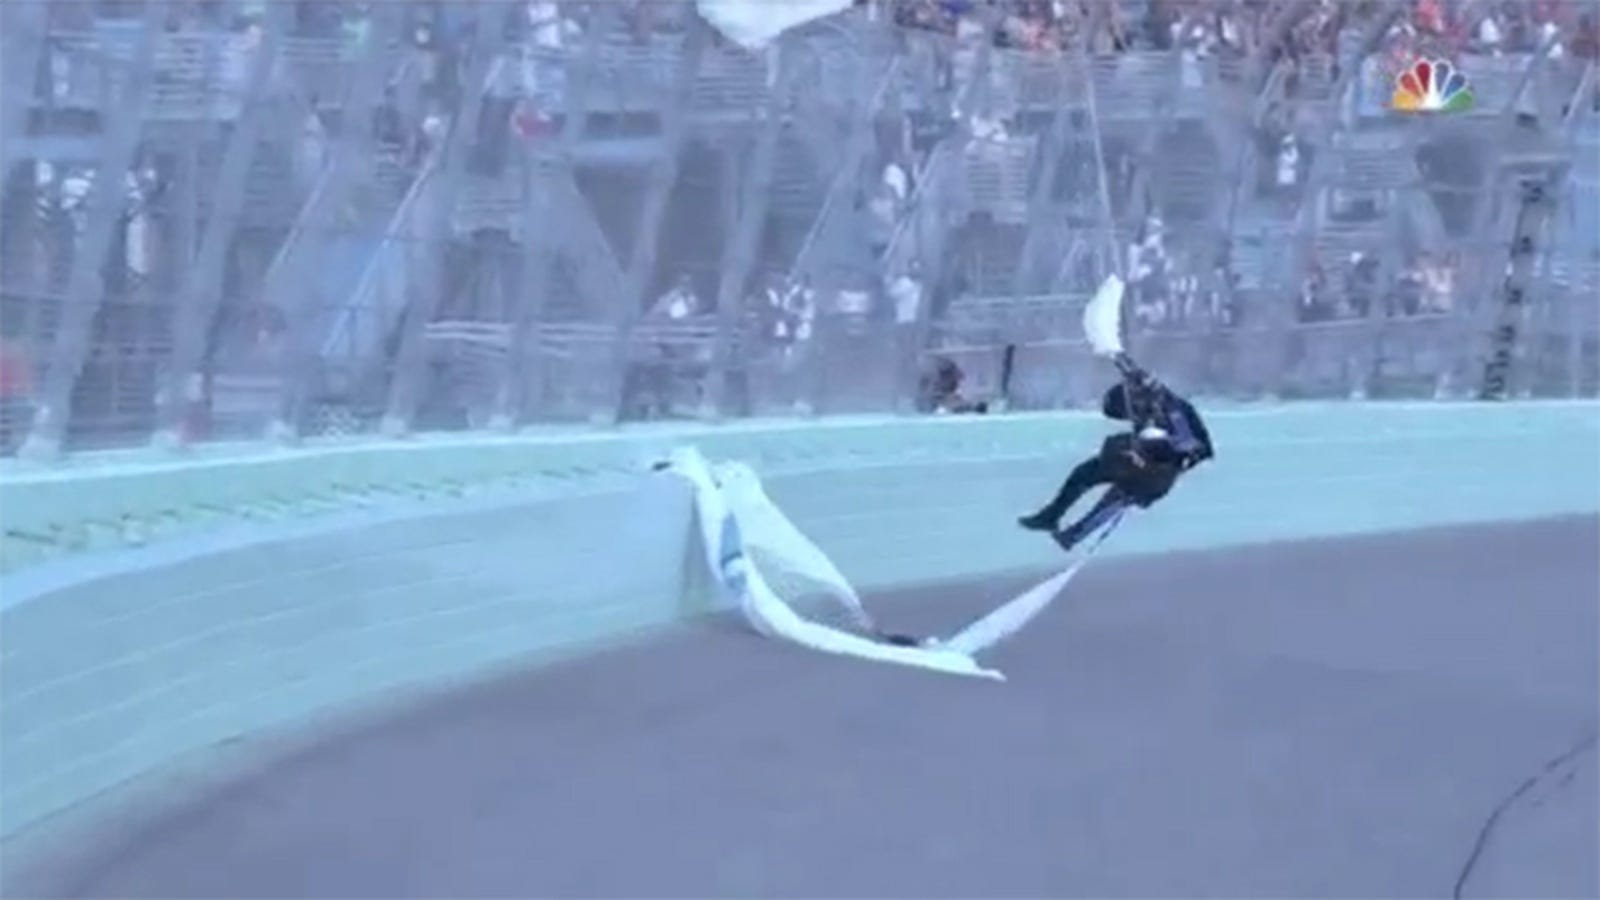 NASCAR Catch Fence Lives Up To Its Name